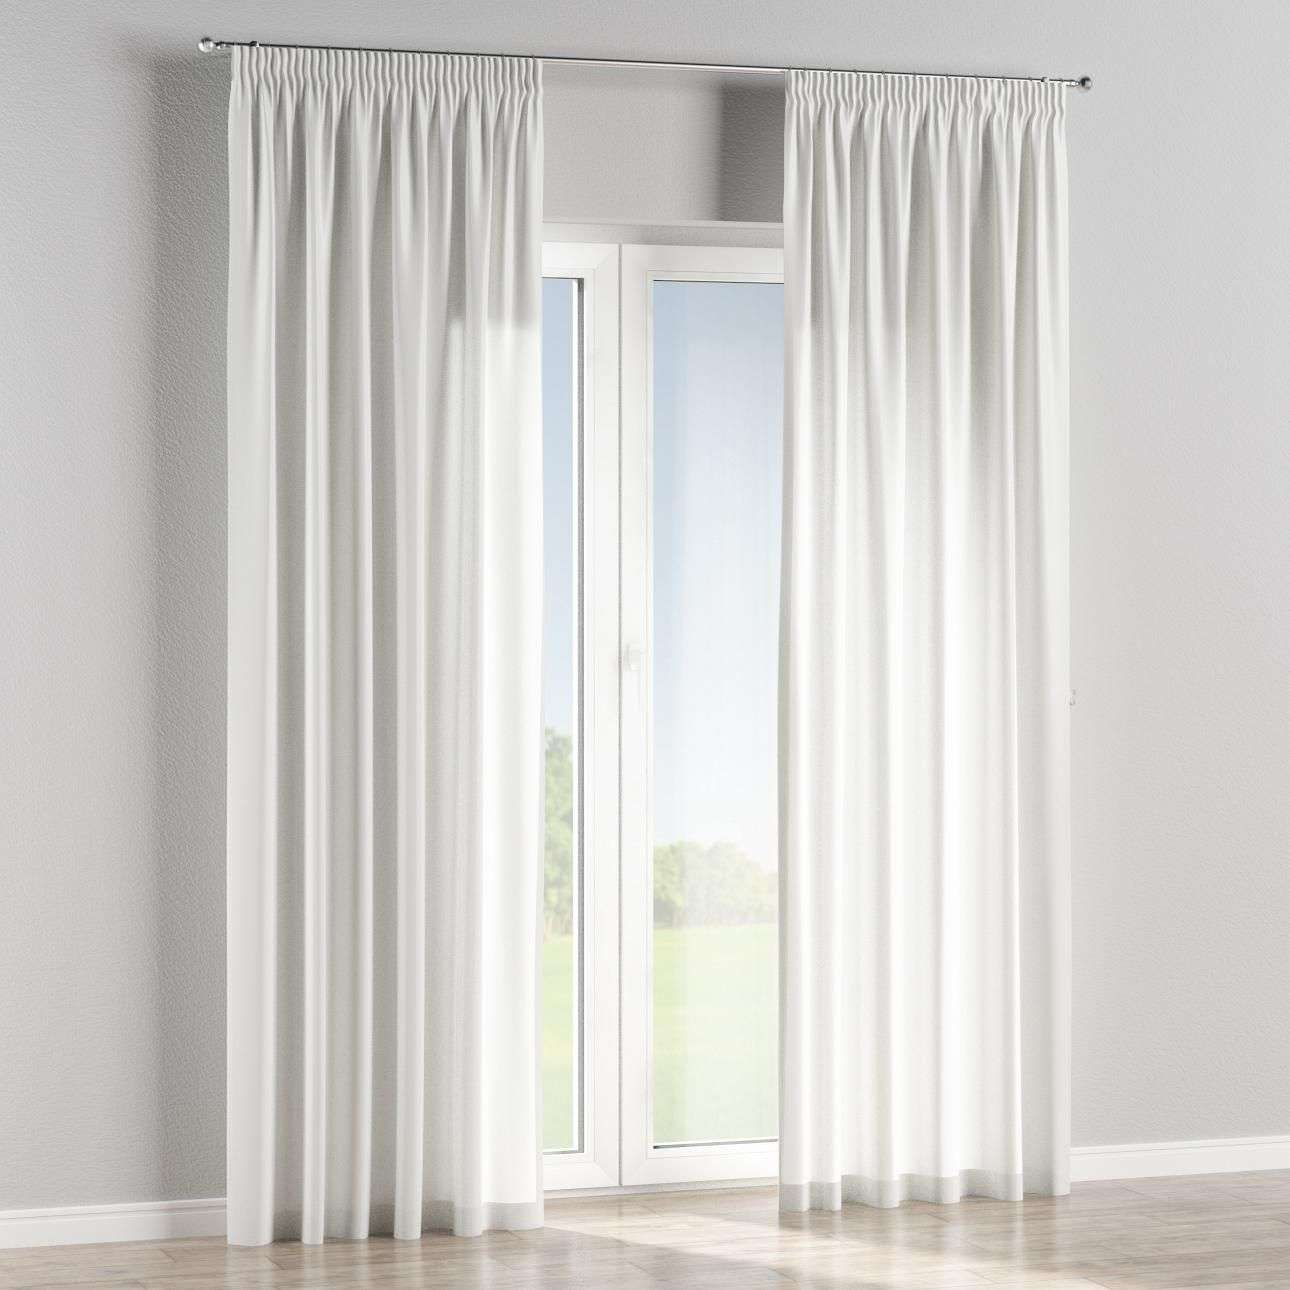 Pencil pleat lined curtains in collection Flowers, fabric: 311-03